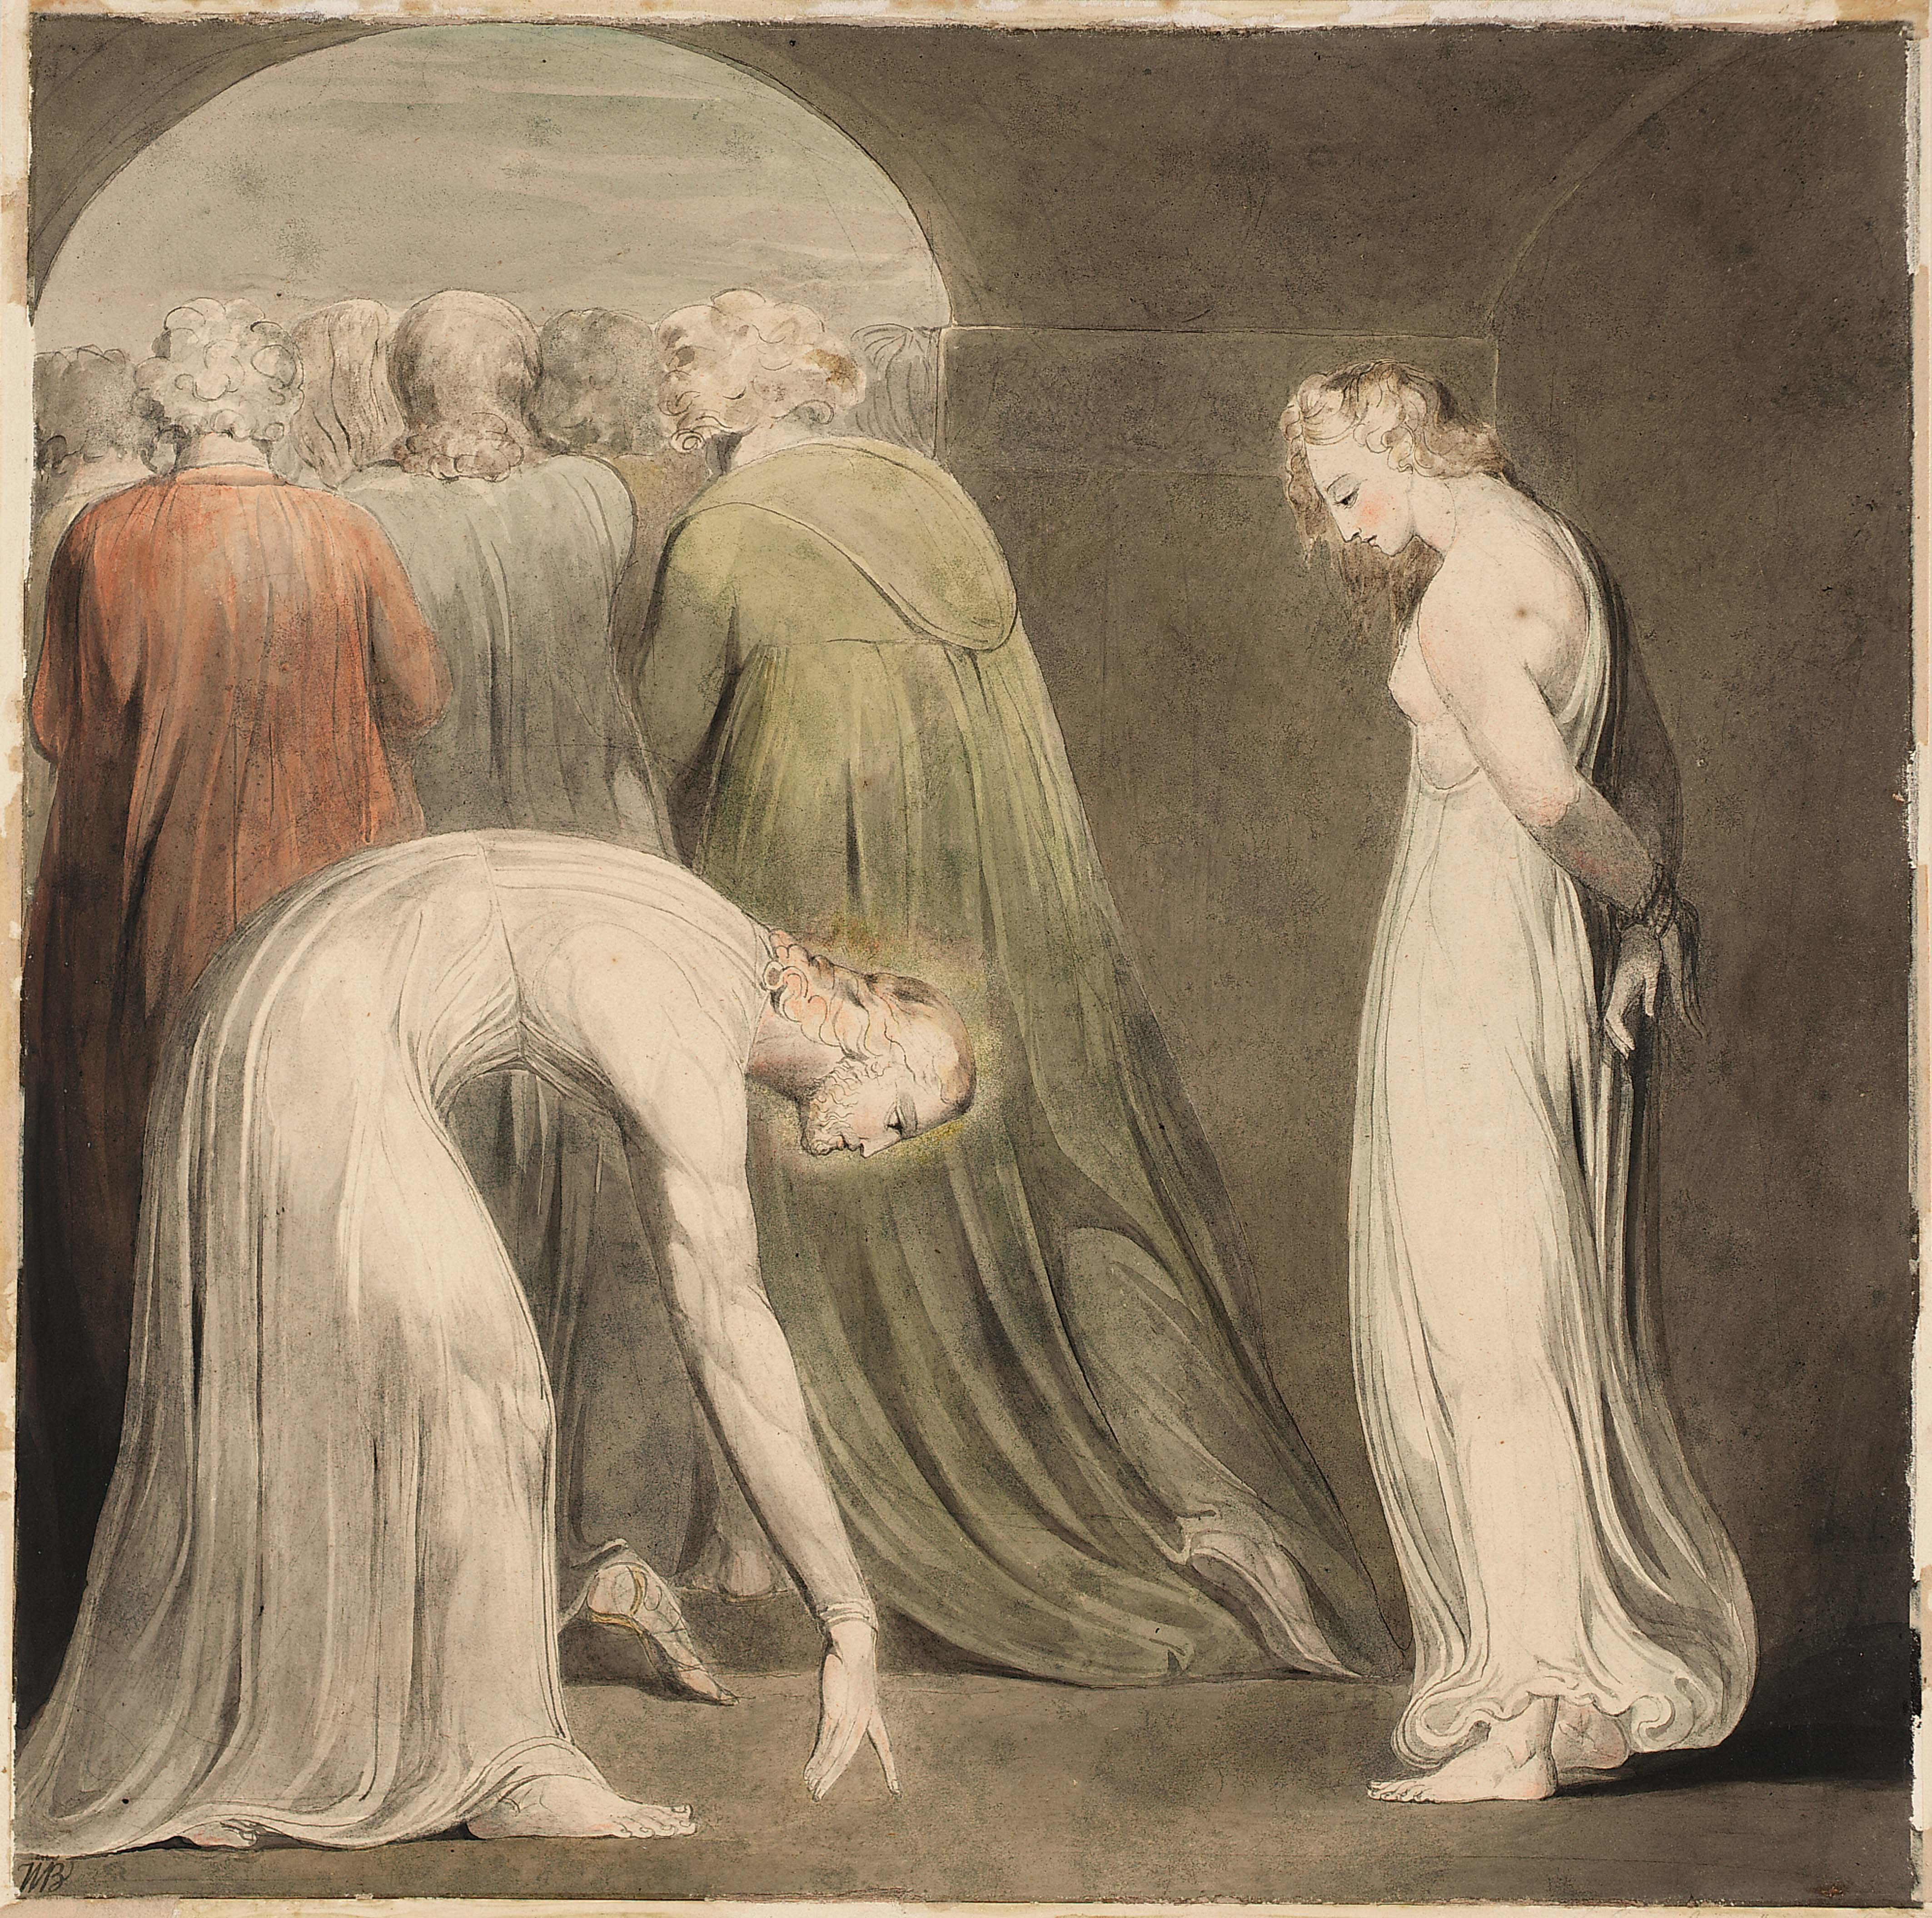 william blake style Was william blake a divine prophet, or an inspired madman.